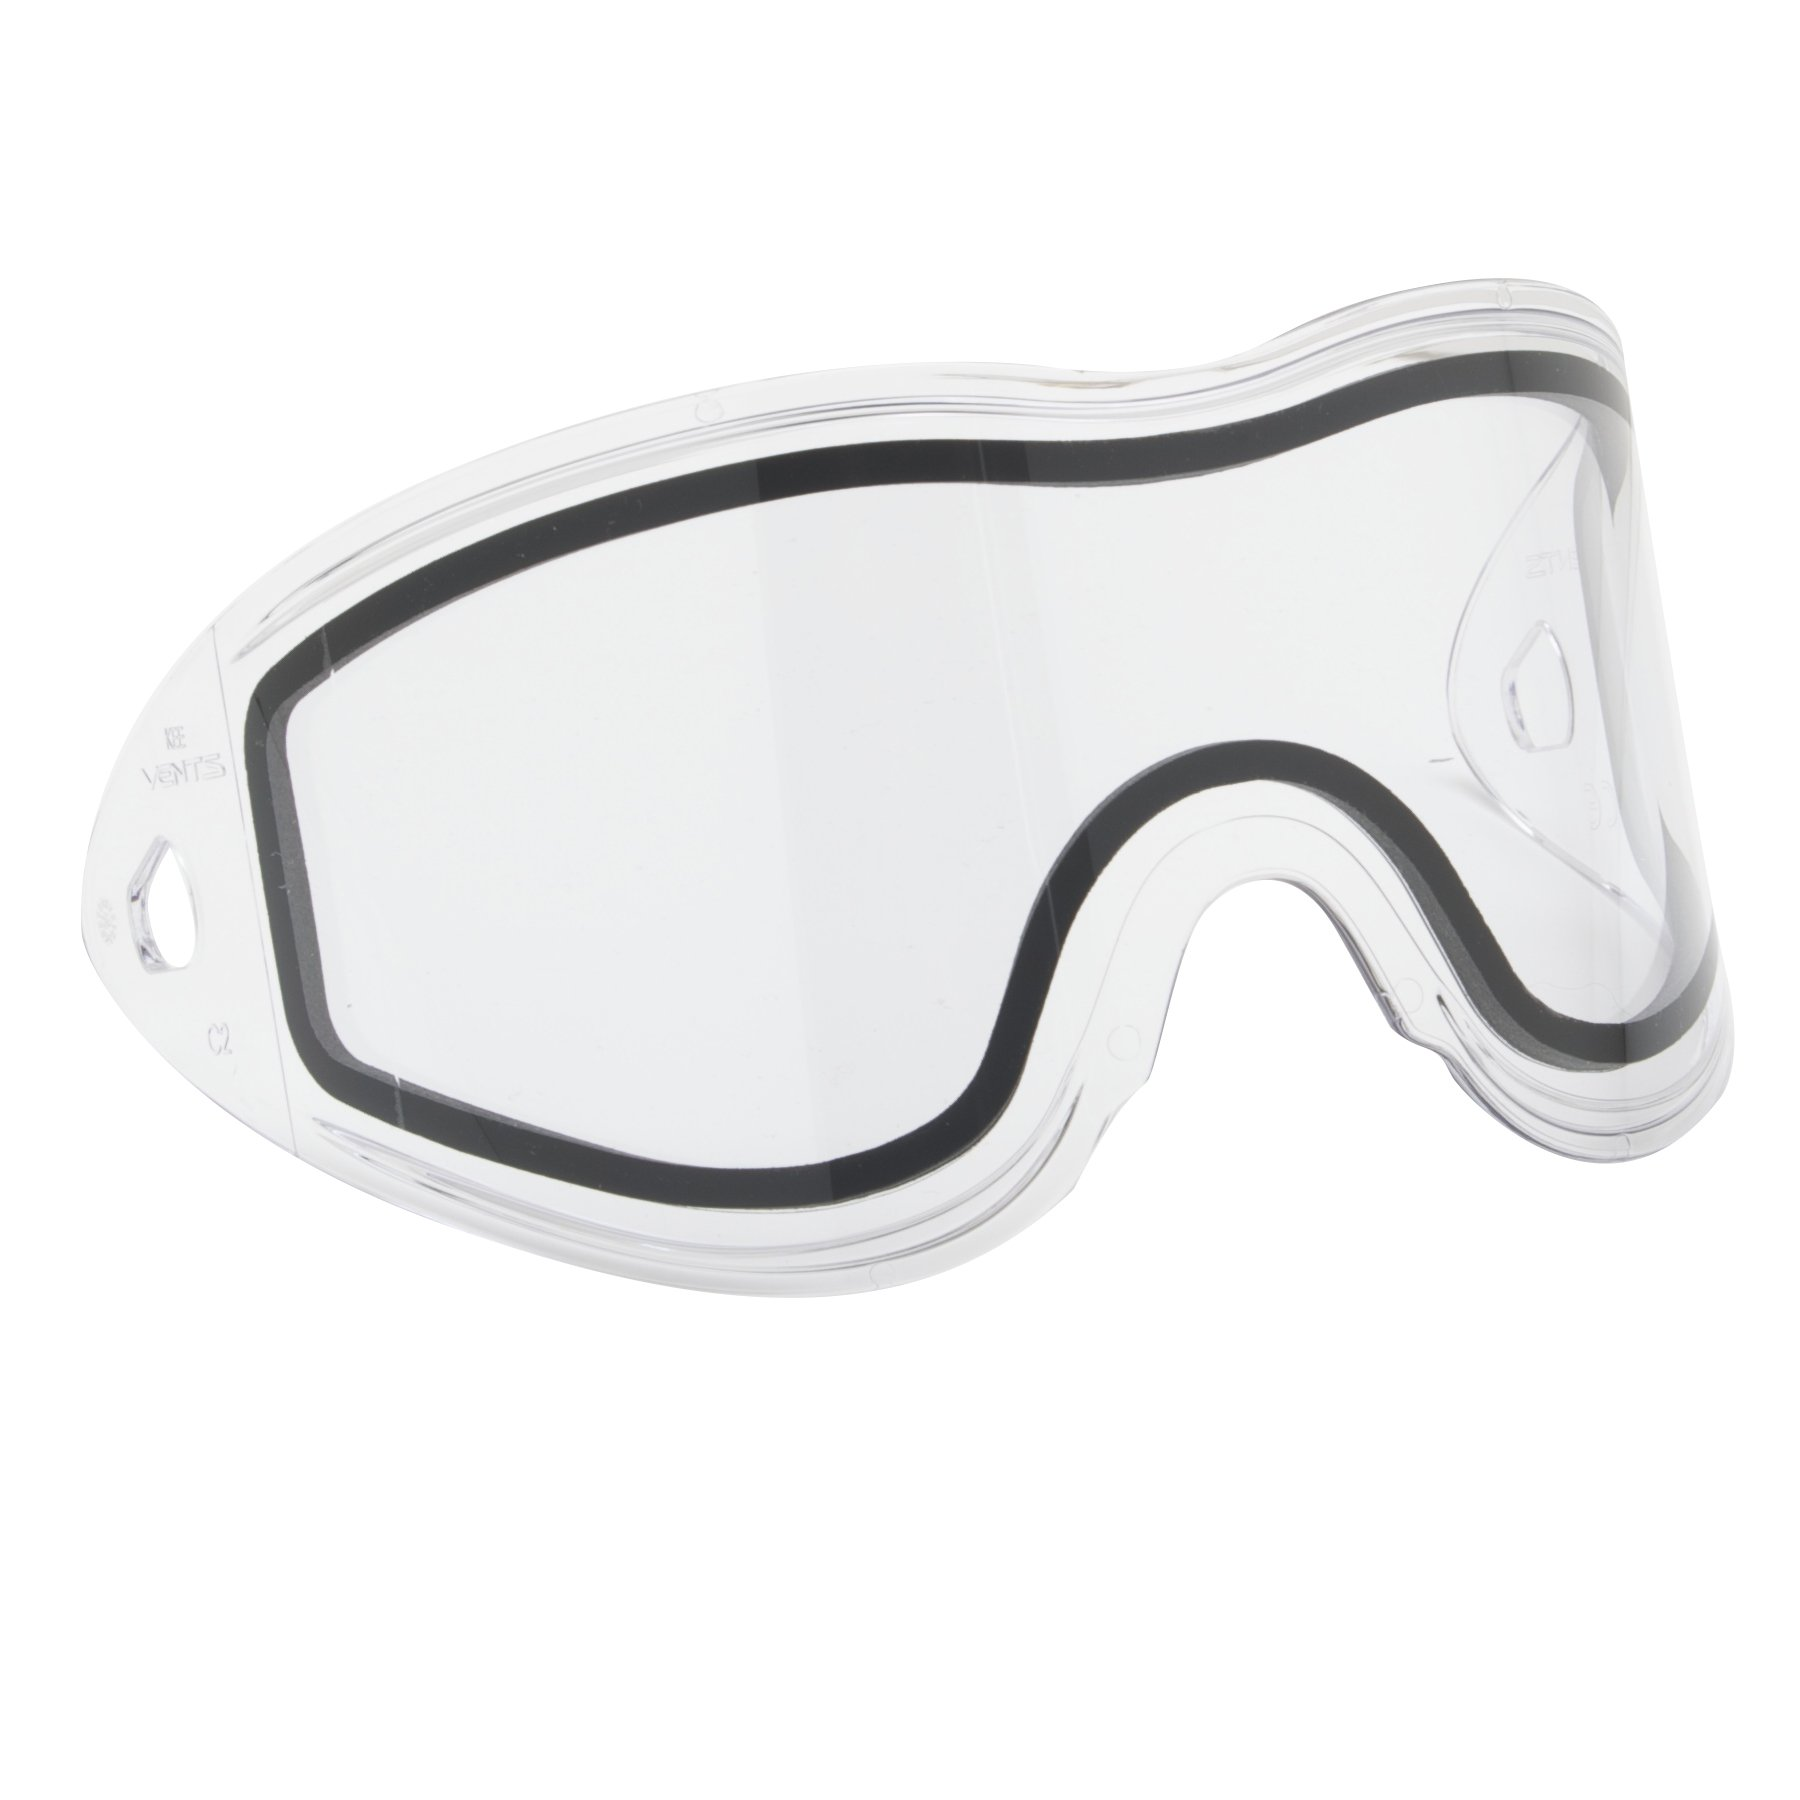 Empire Paintball Mask Lens, Clear by Empire Paintball